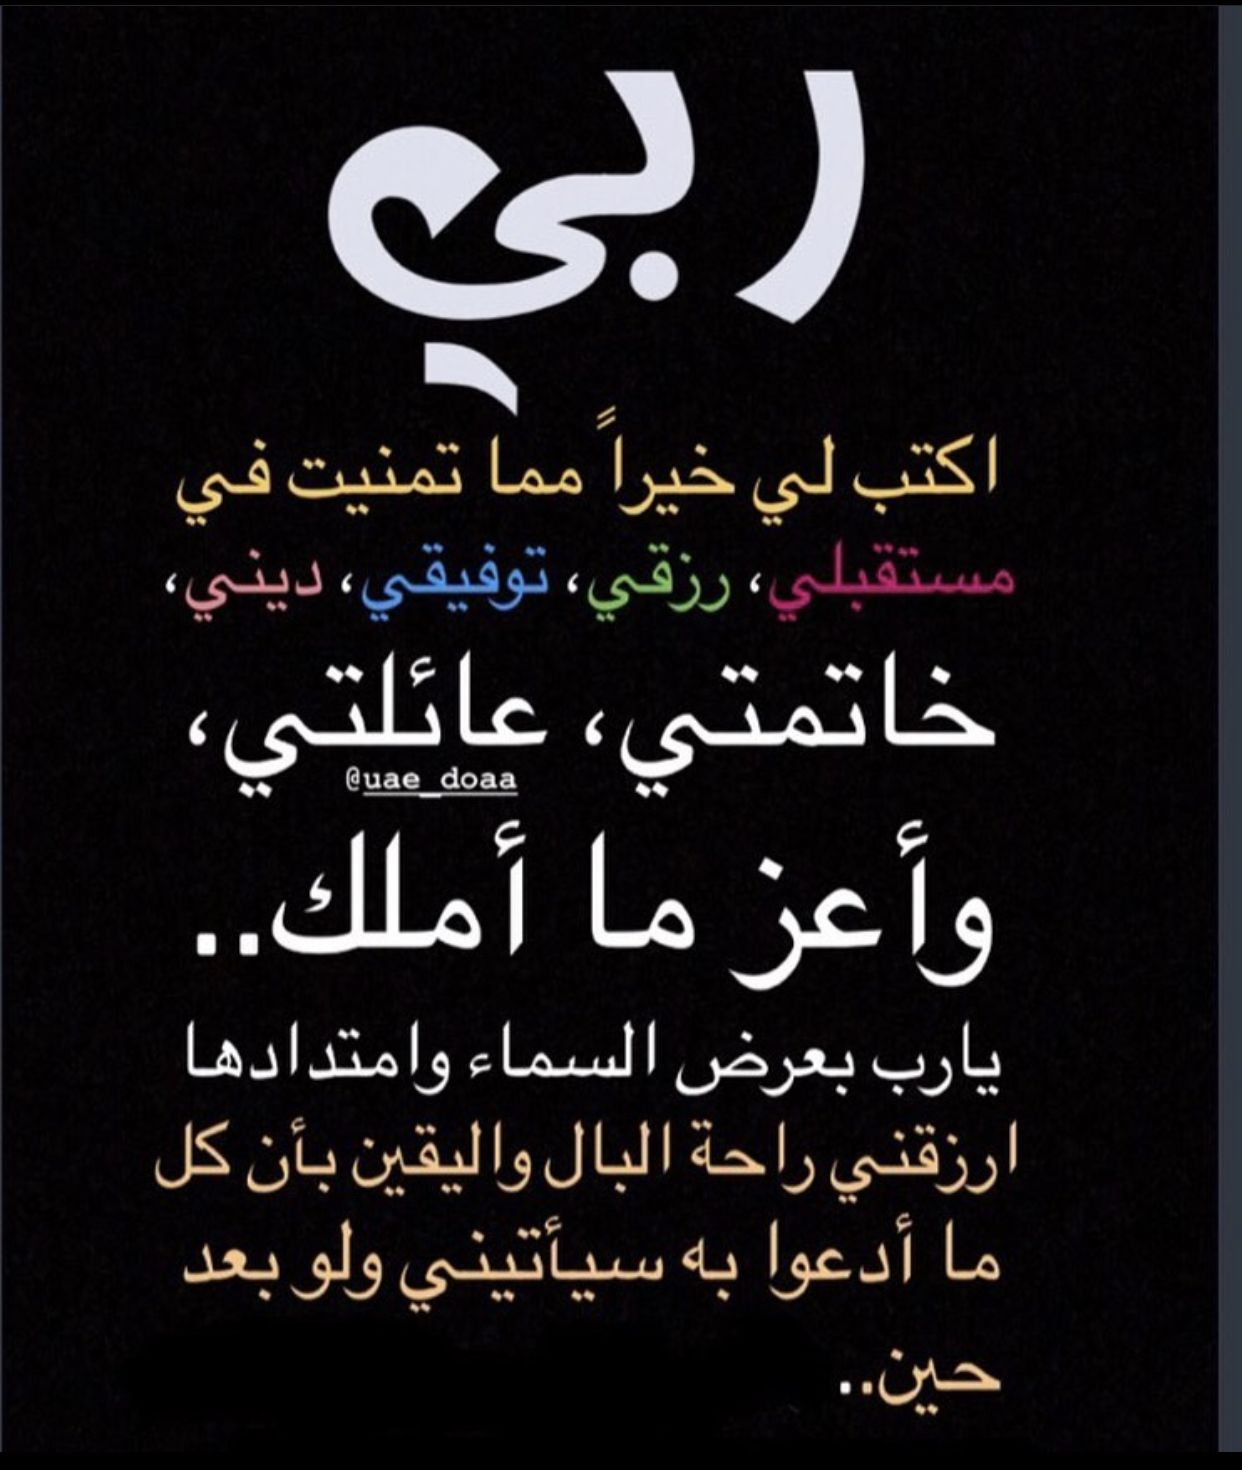 Pin By خليفه On اذكارات Quran Quotes Arabic Calligraphy